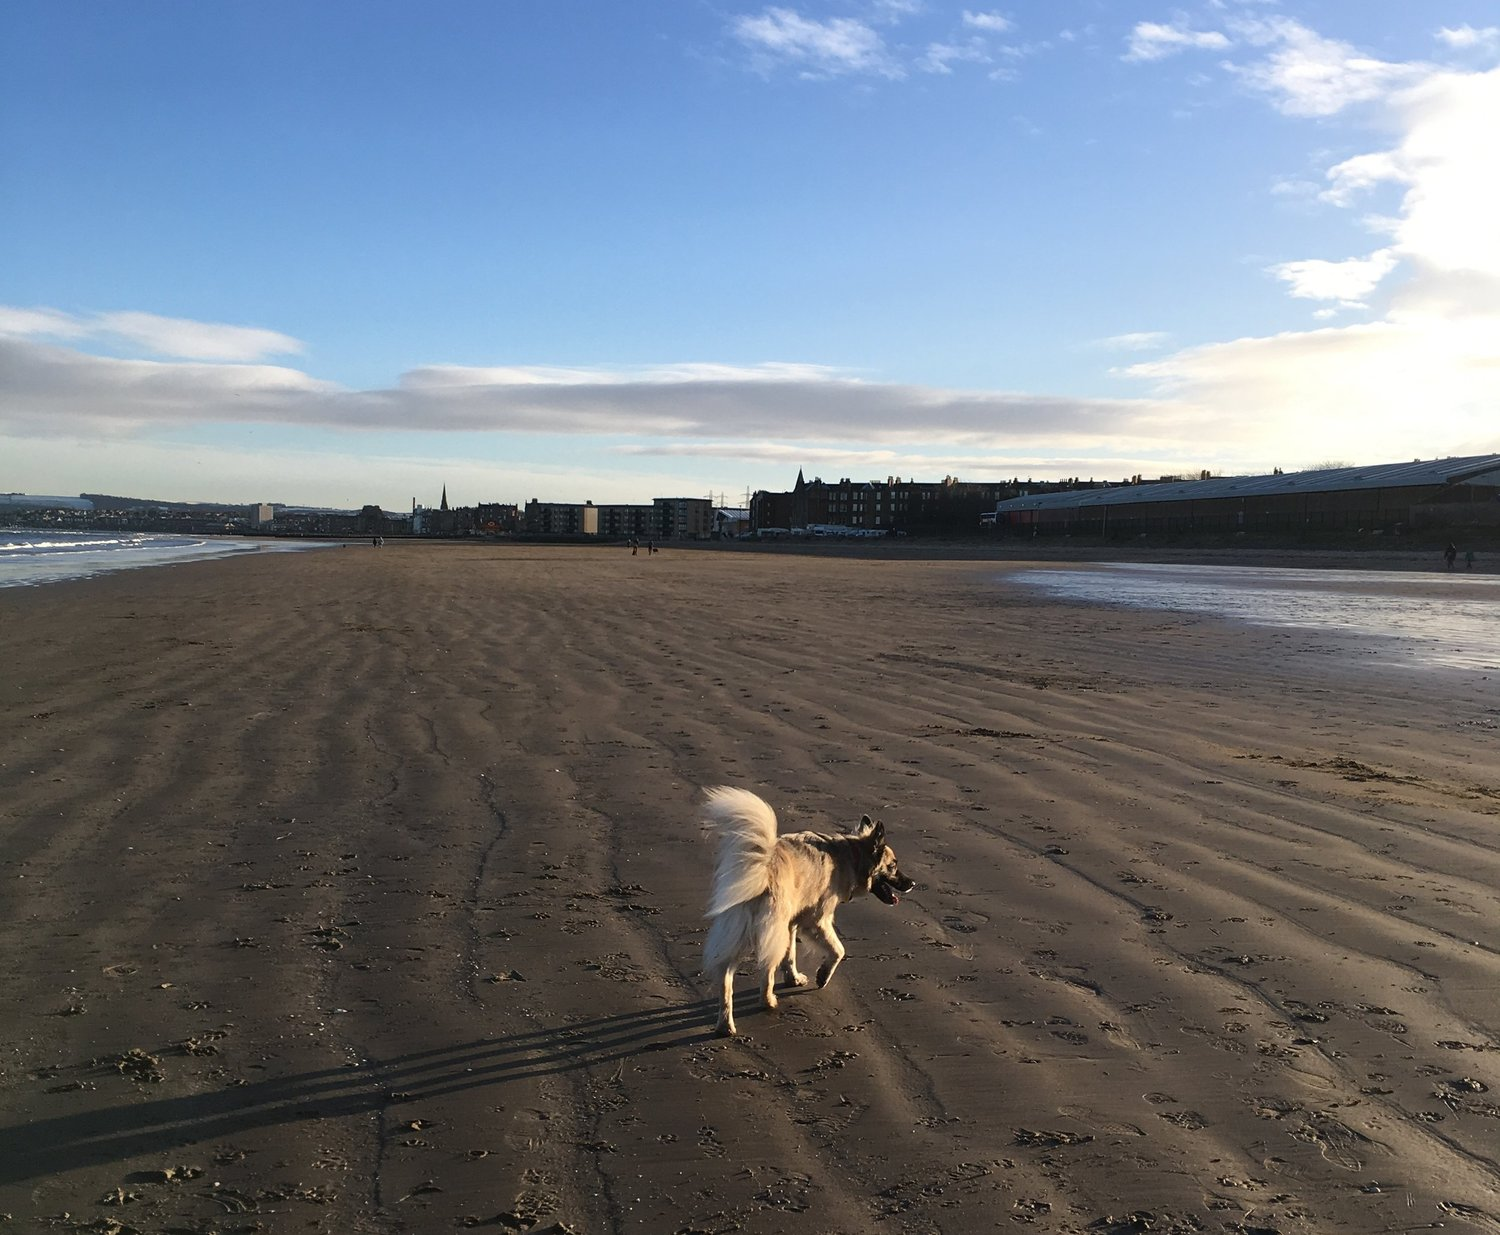 Portobello beach – does it get any better than this?